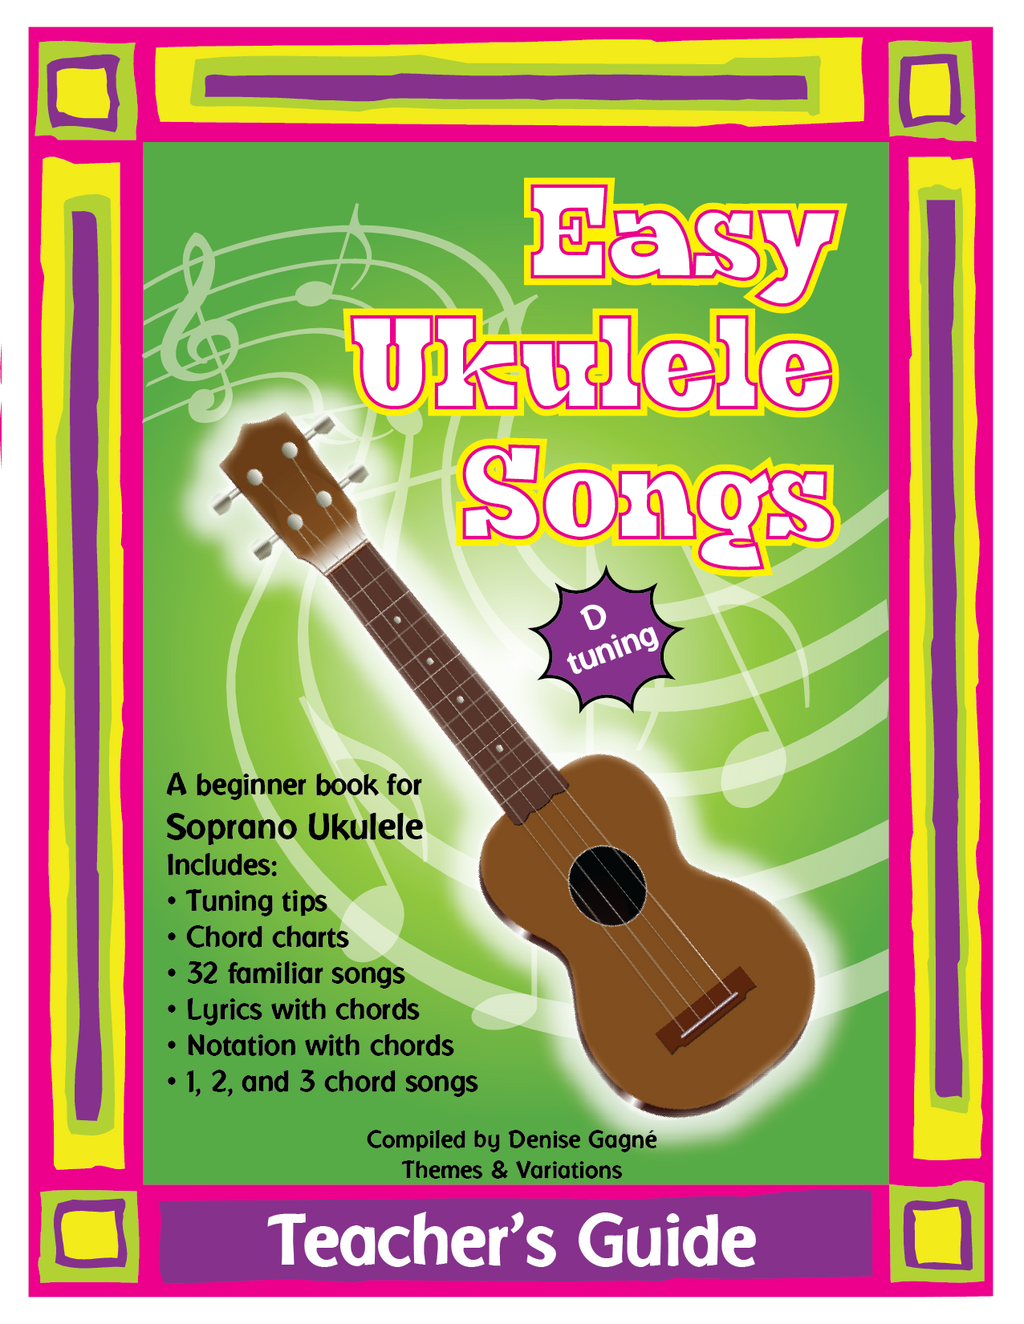 Easy Ukulele Songs In D Teachers Guide Themes And Variations Together With How To String A Diagram On Note Book Cover Green Background The Centre